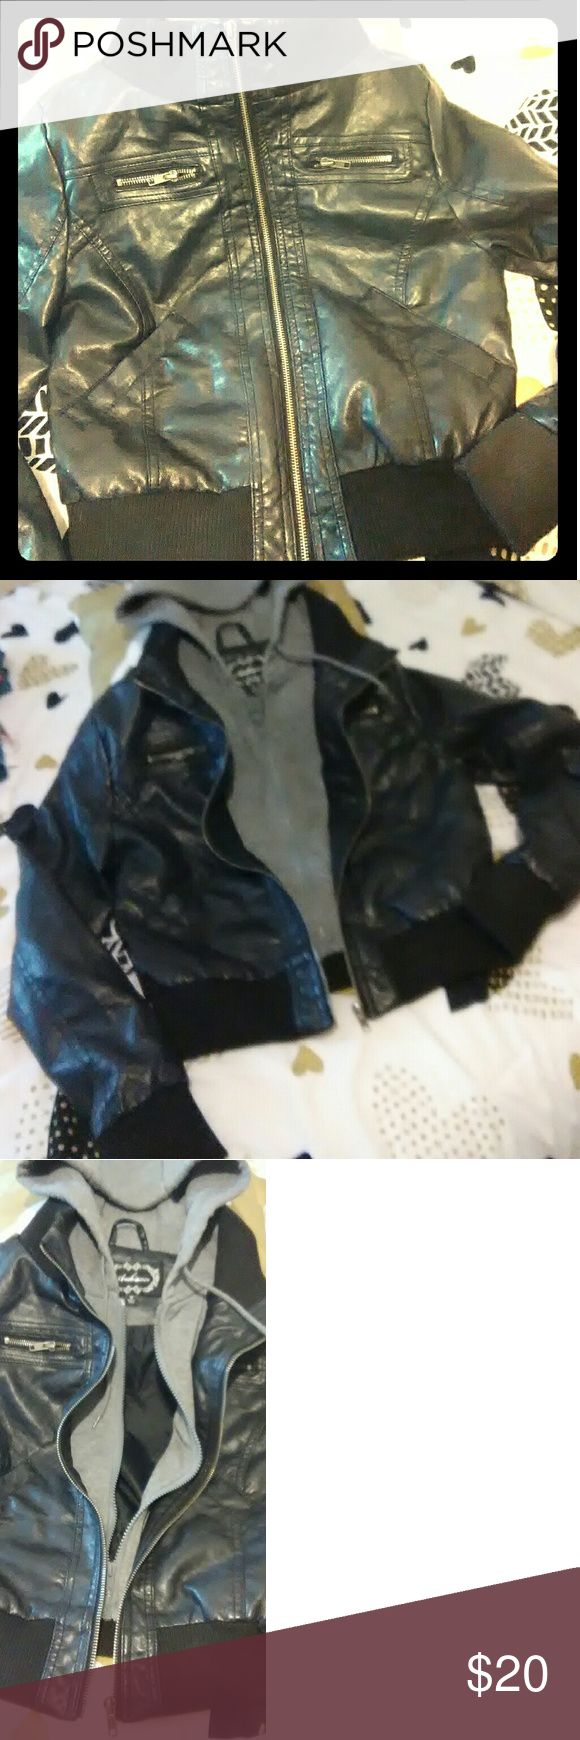 Black Vegan Leather, Hooded Bomber Jacket Very warm, moto faux leather bomber jacket.  Like new, very comfortable and stylish. Jackets & Coats Puffers